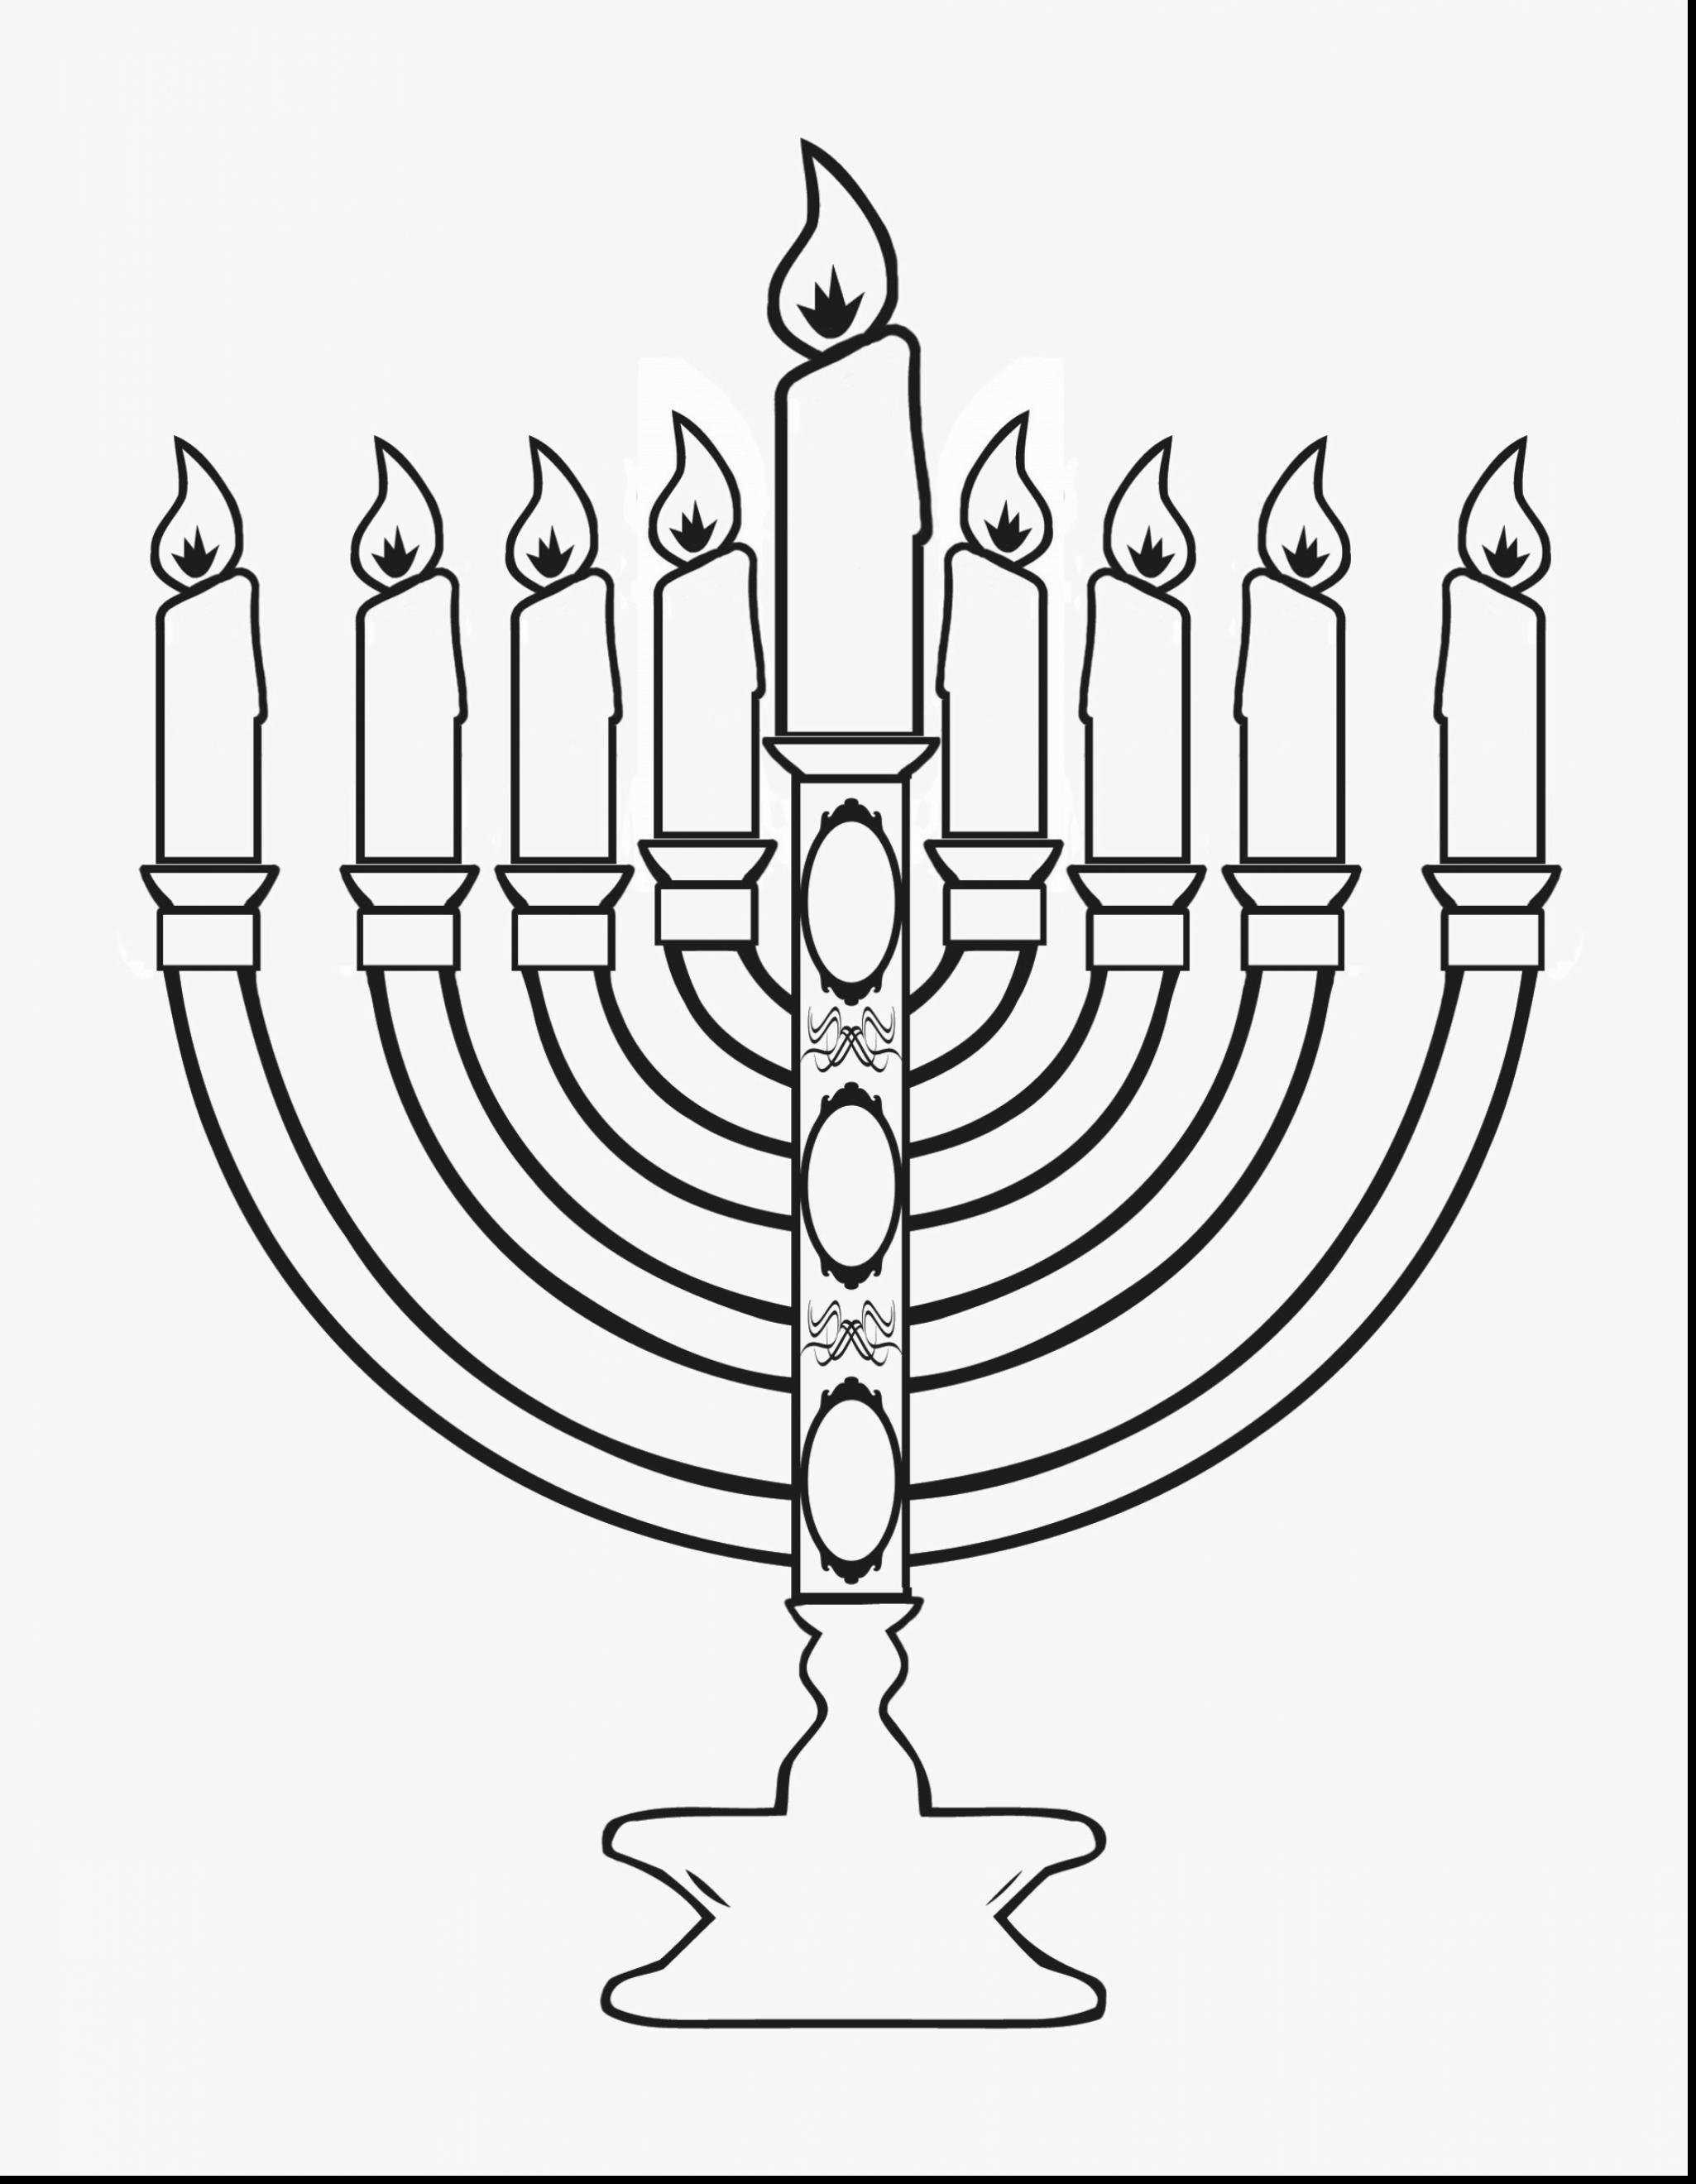 Hanukkah Menorah Drawing At Getdrawings